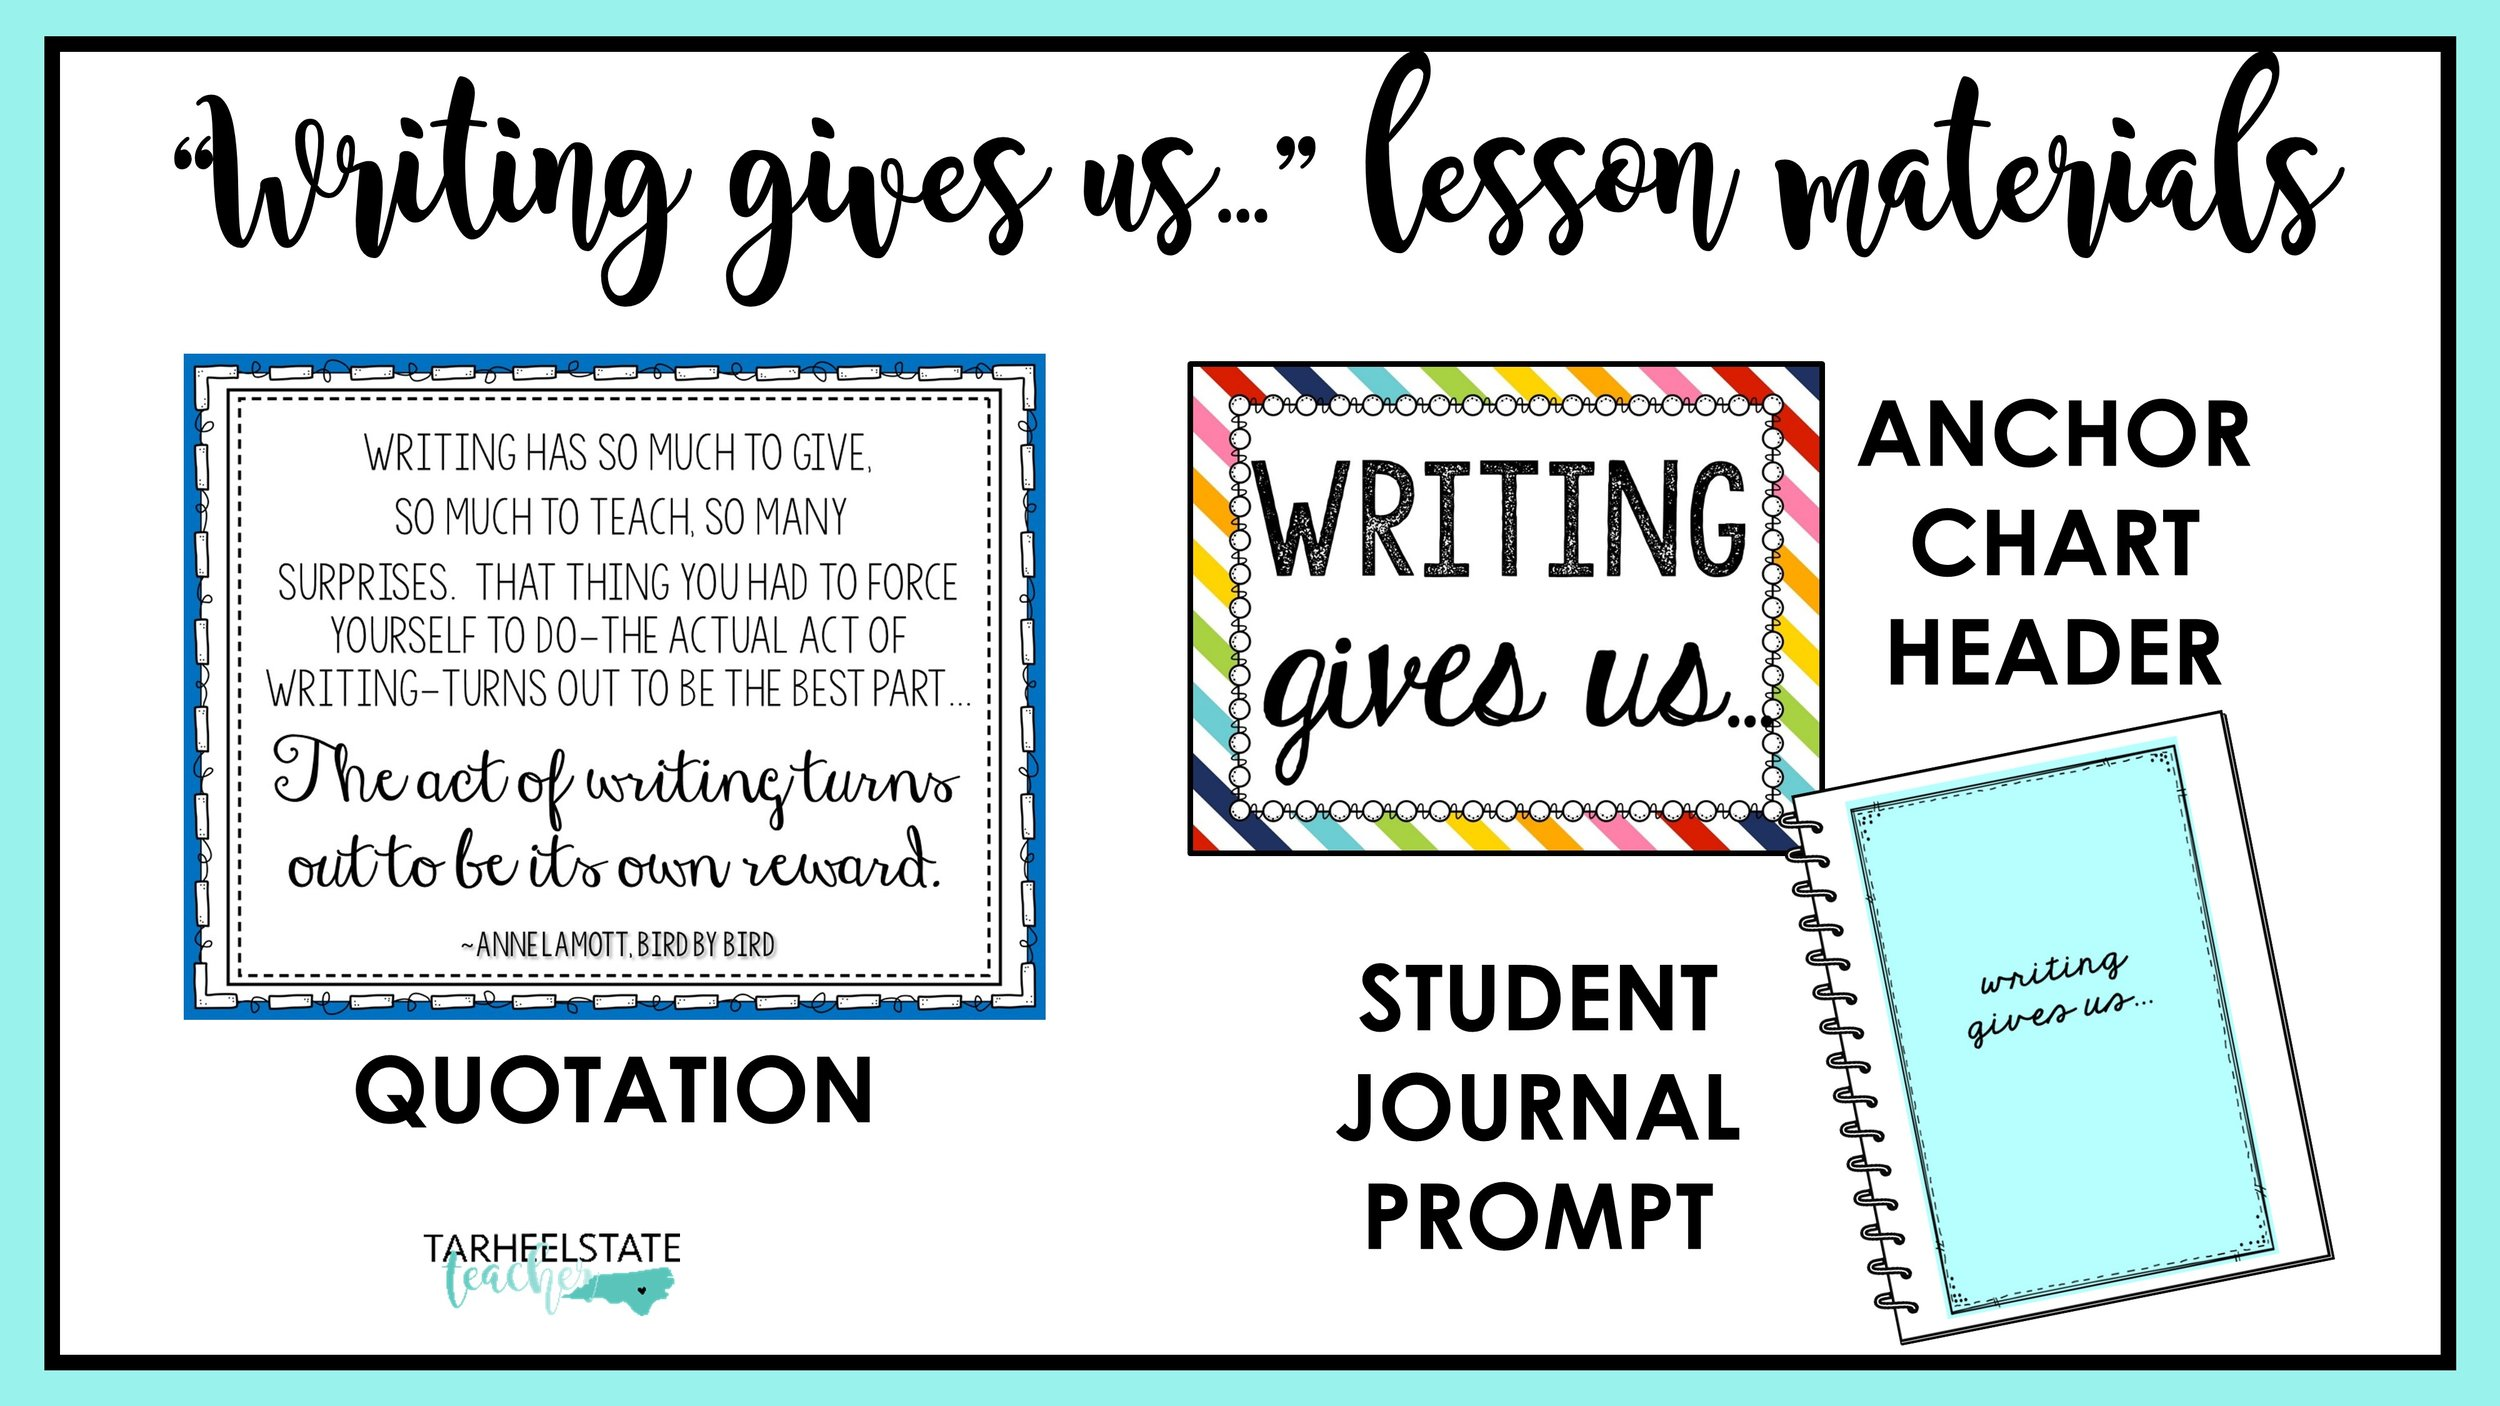 Launching Writers Workshop so Students Don't See Writing as